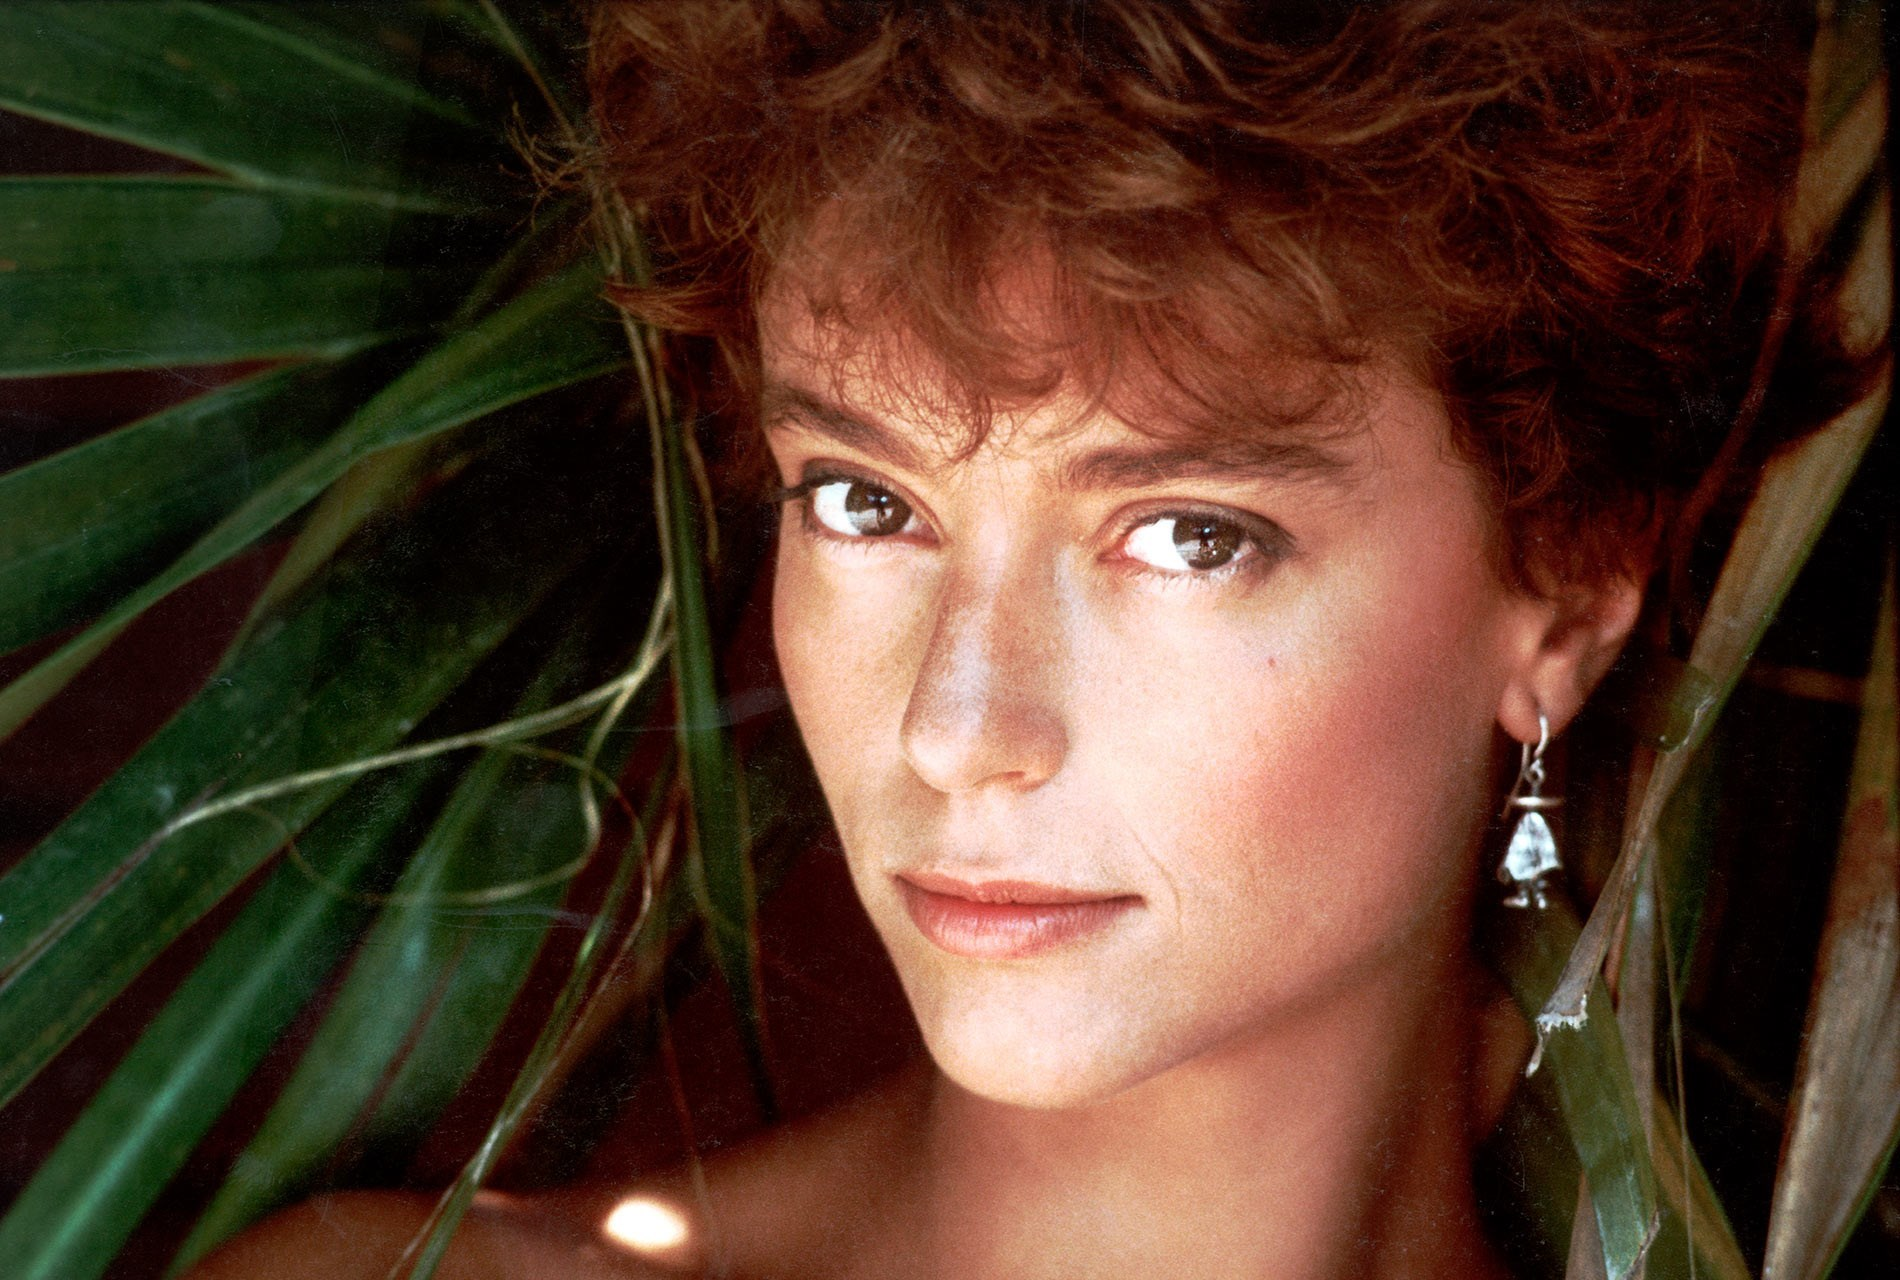 Rachel Ward | Known people - famous people news and biographies